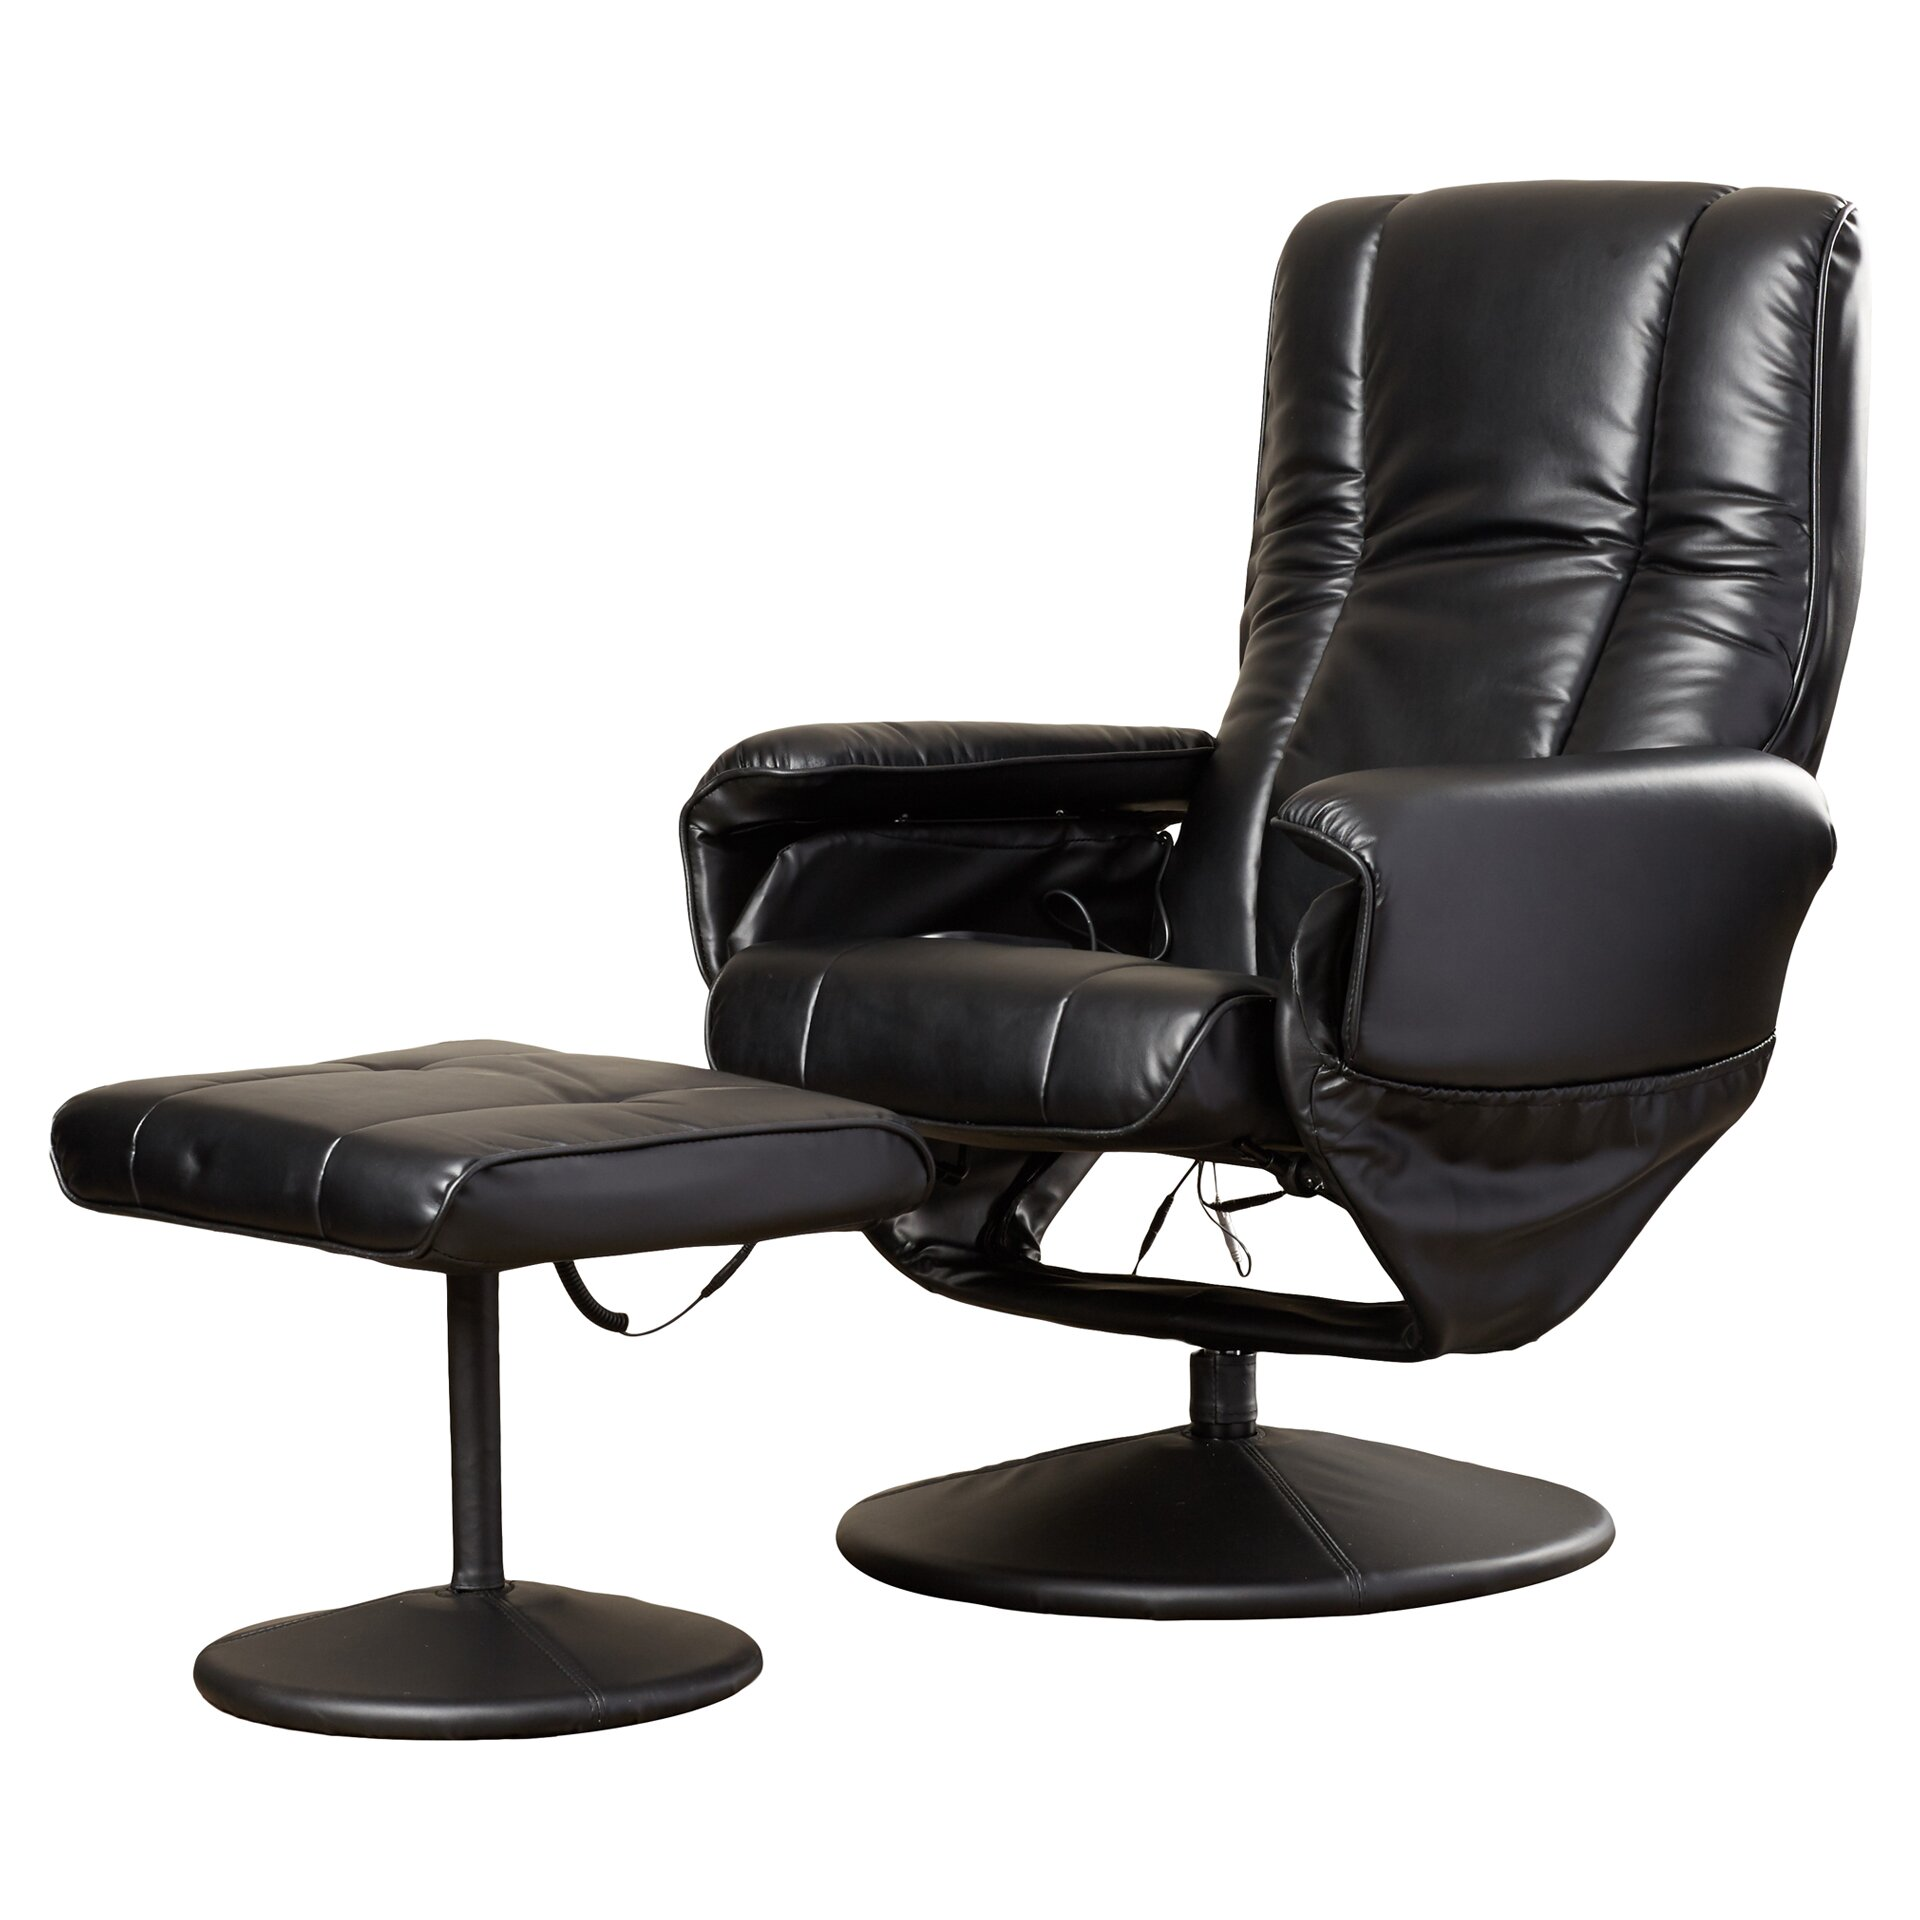 Symple Stuff Leather Heated Reclining Massage Chair With Ottoman Review